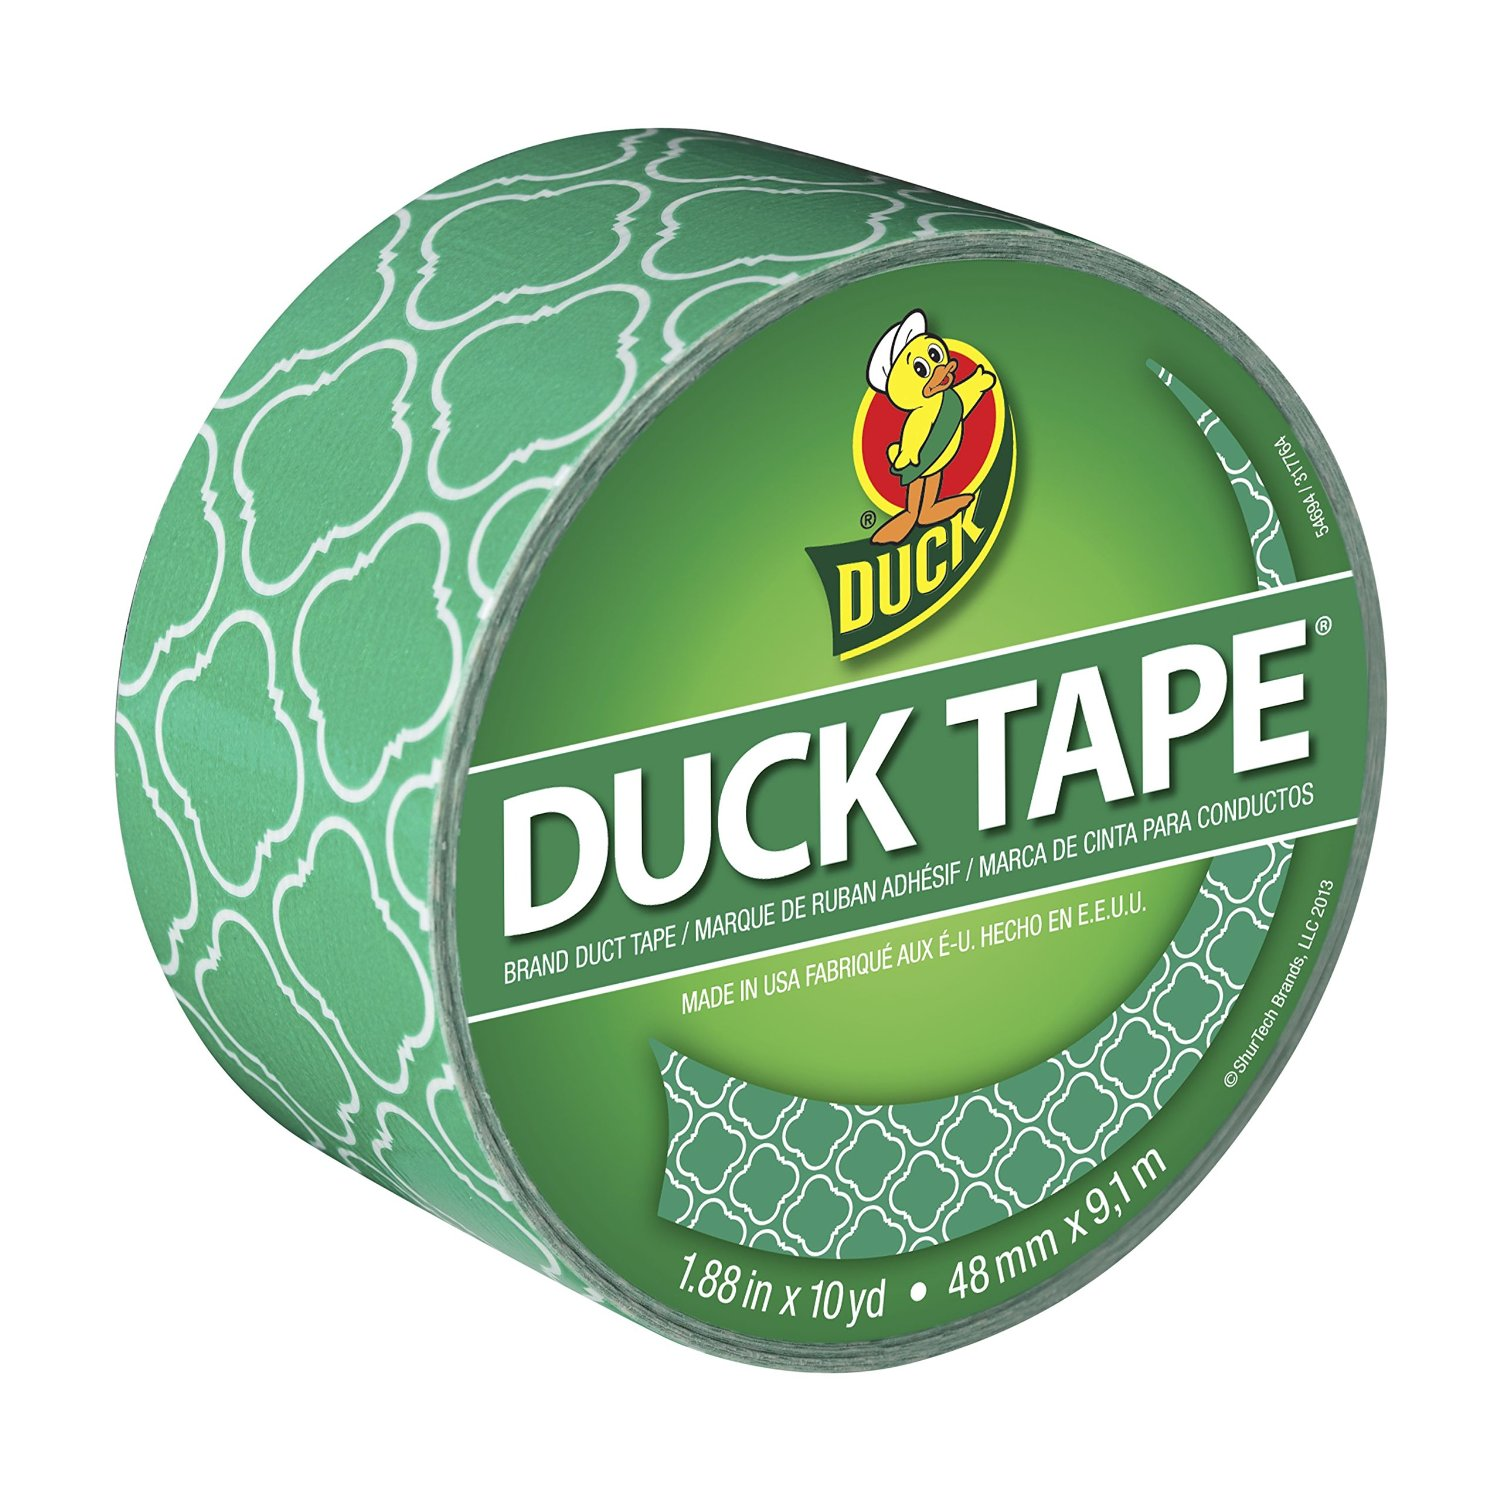 Duck Brand 282565 Printed Duct Tape, Emerald Tile, 1.88 Inches x 10 Yards, Single Roll